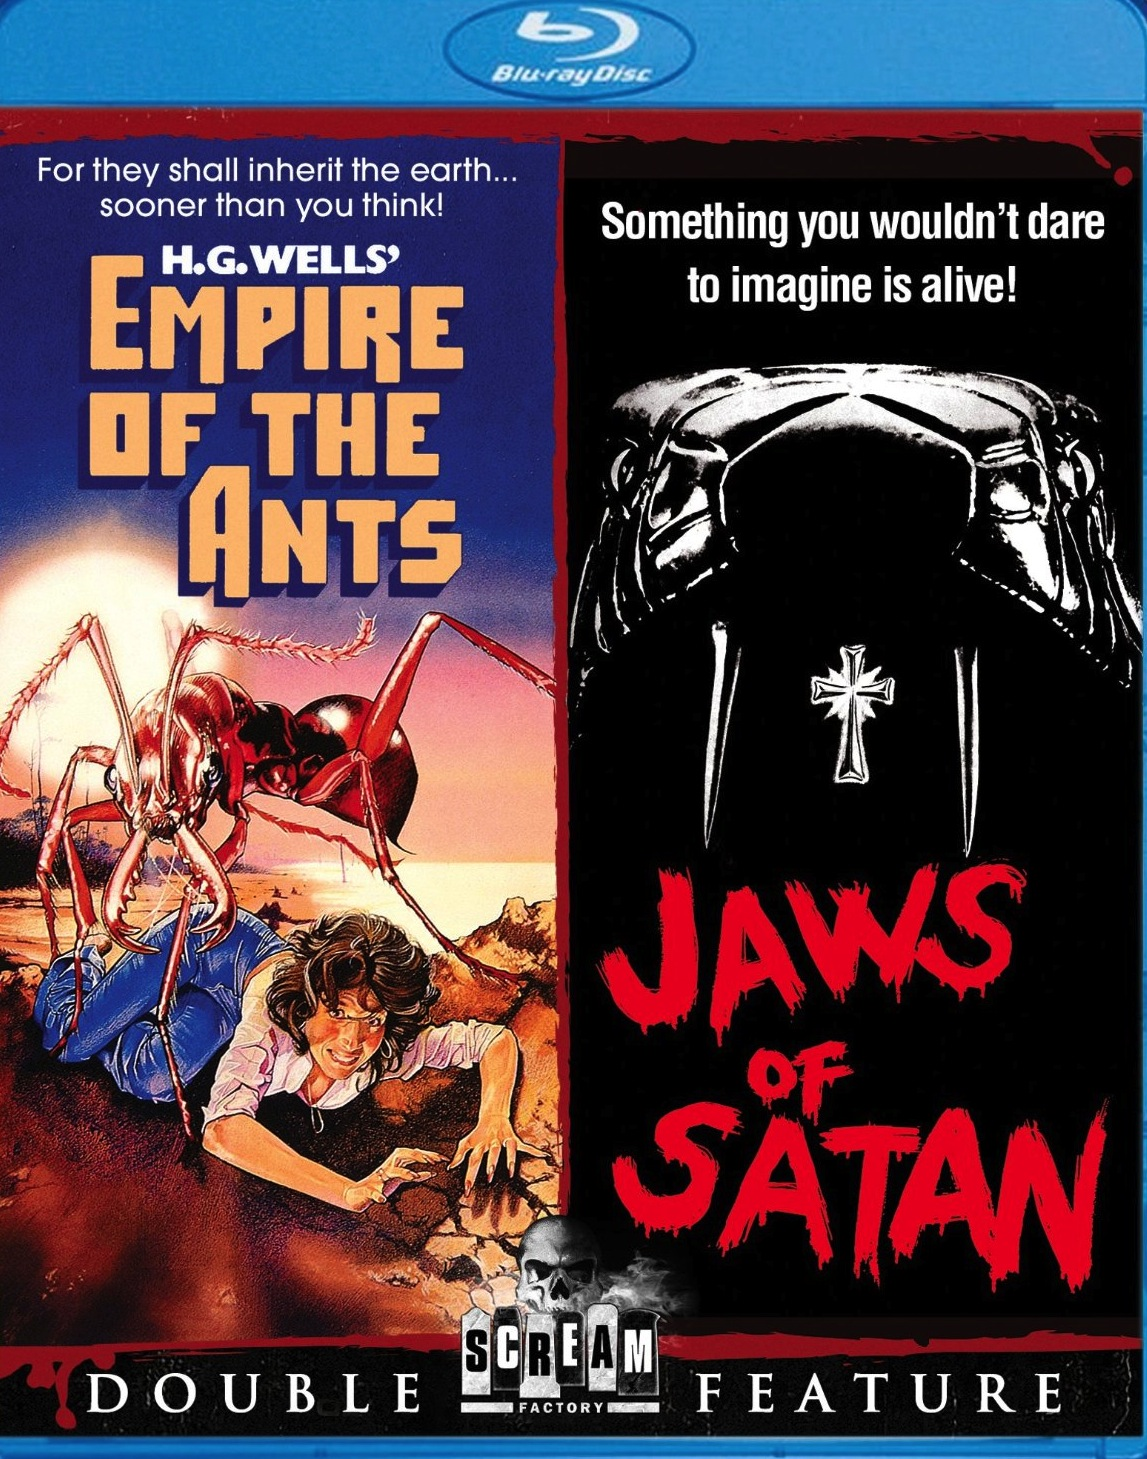 Empire of the Ants / Jaws of Satan